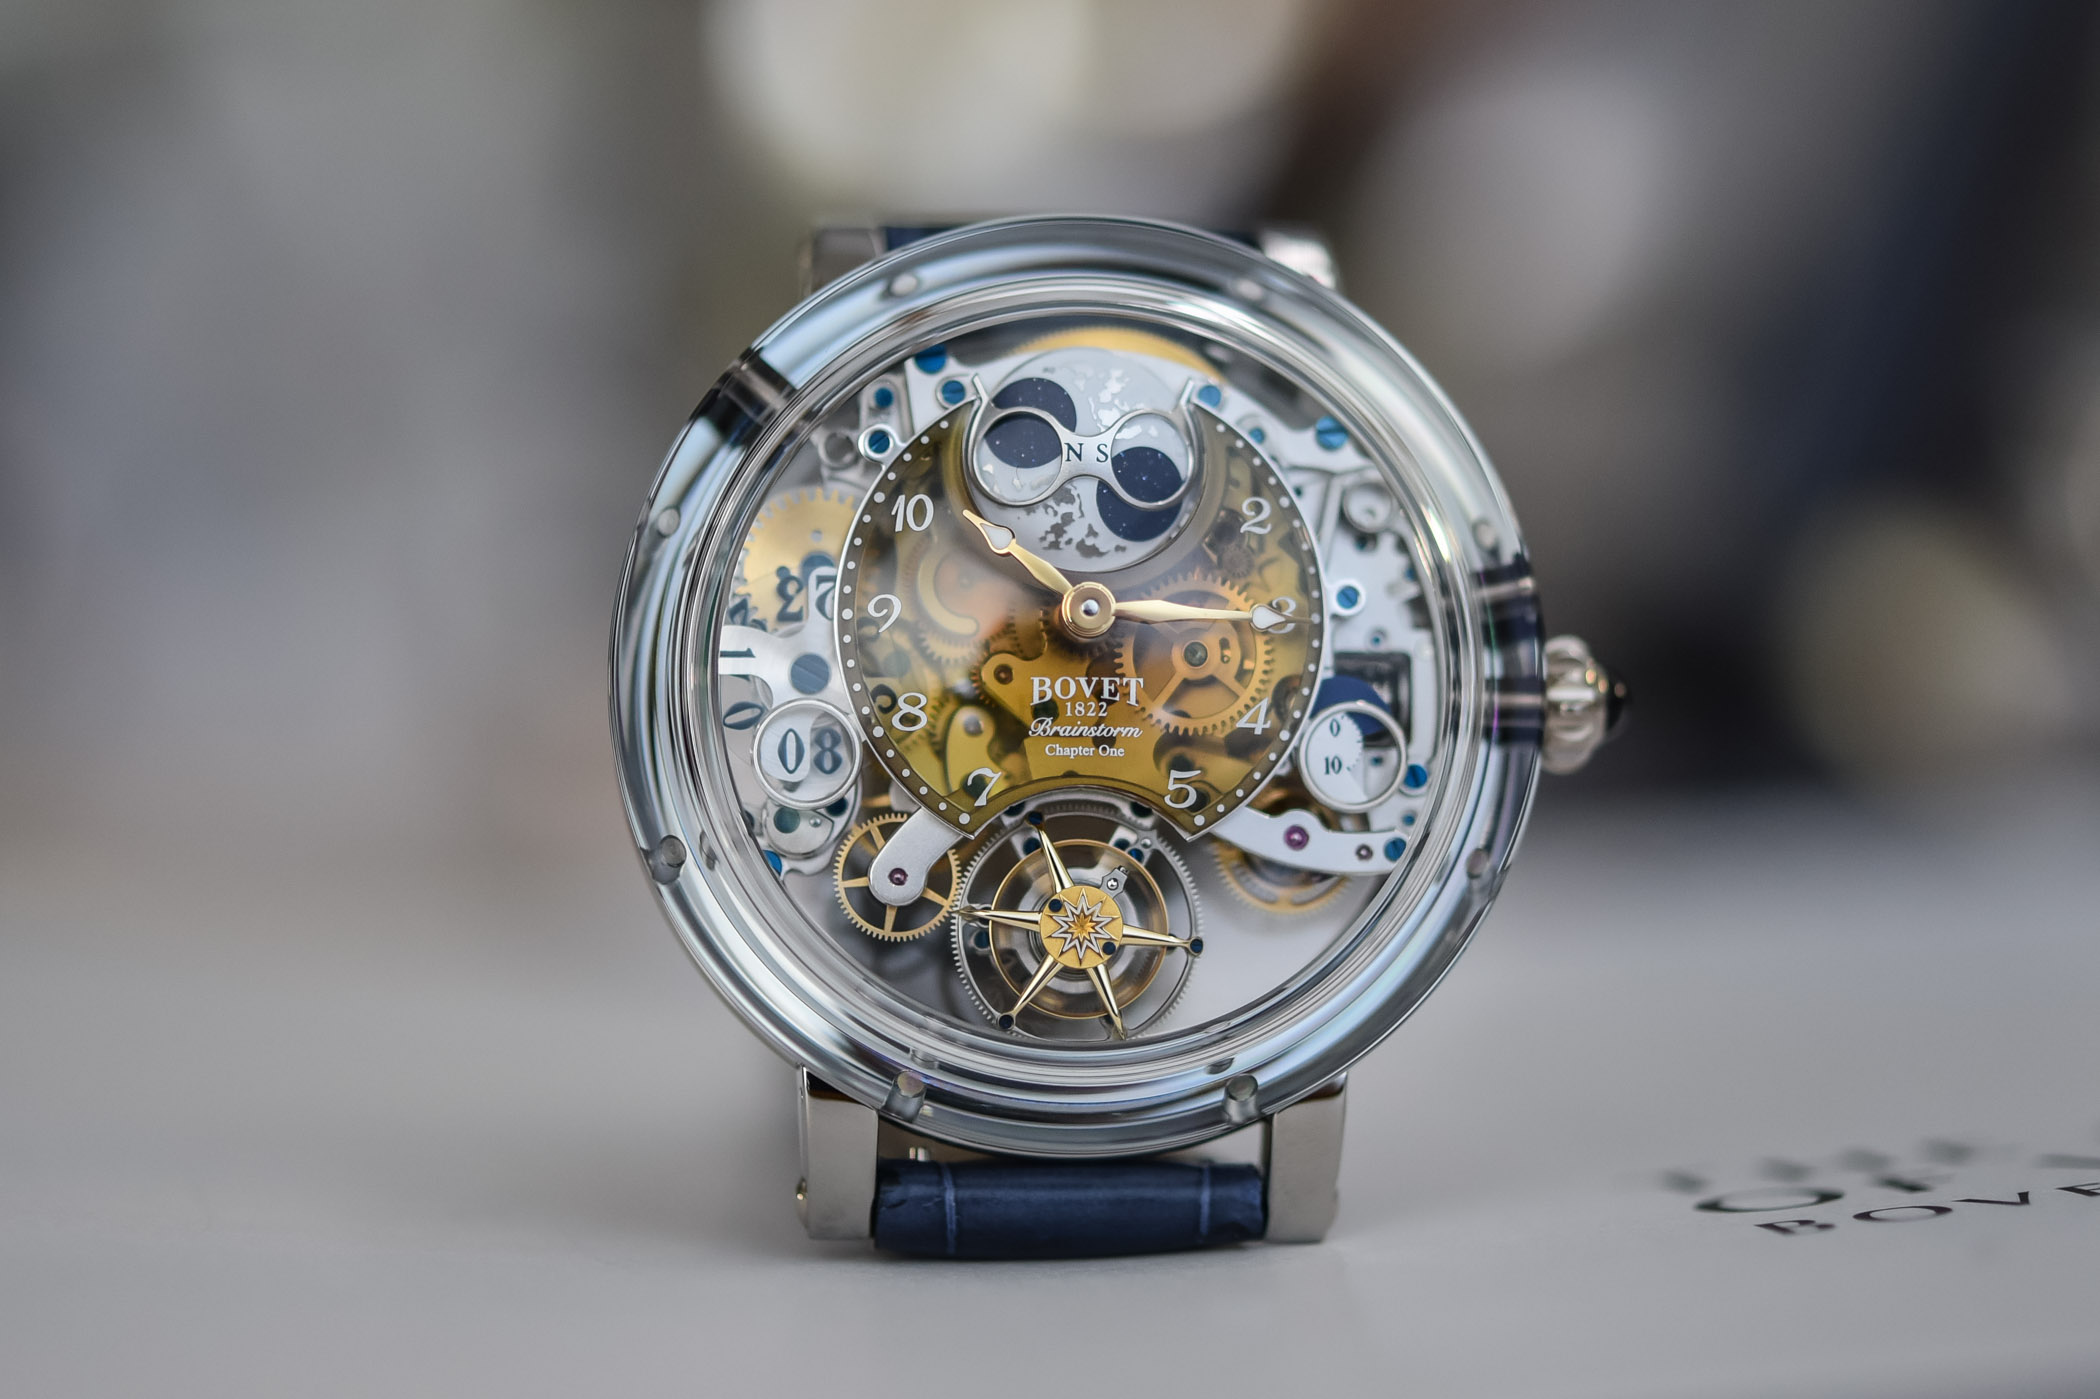 Bovet Recital 26 Brainstorm Chapter One Champagne Quartz Dial